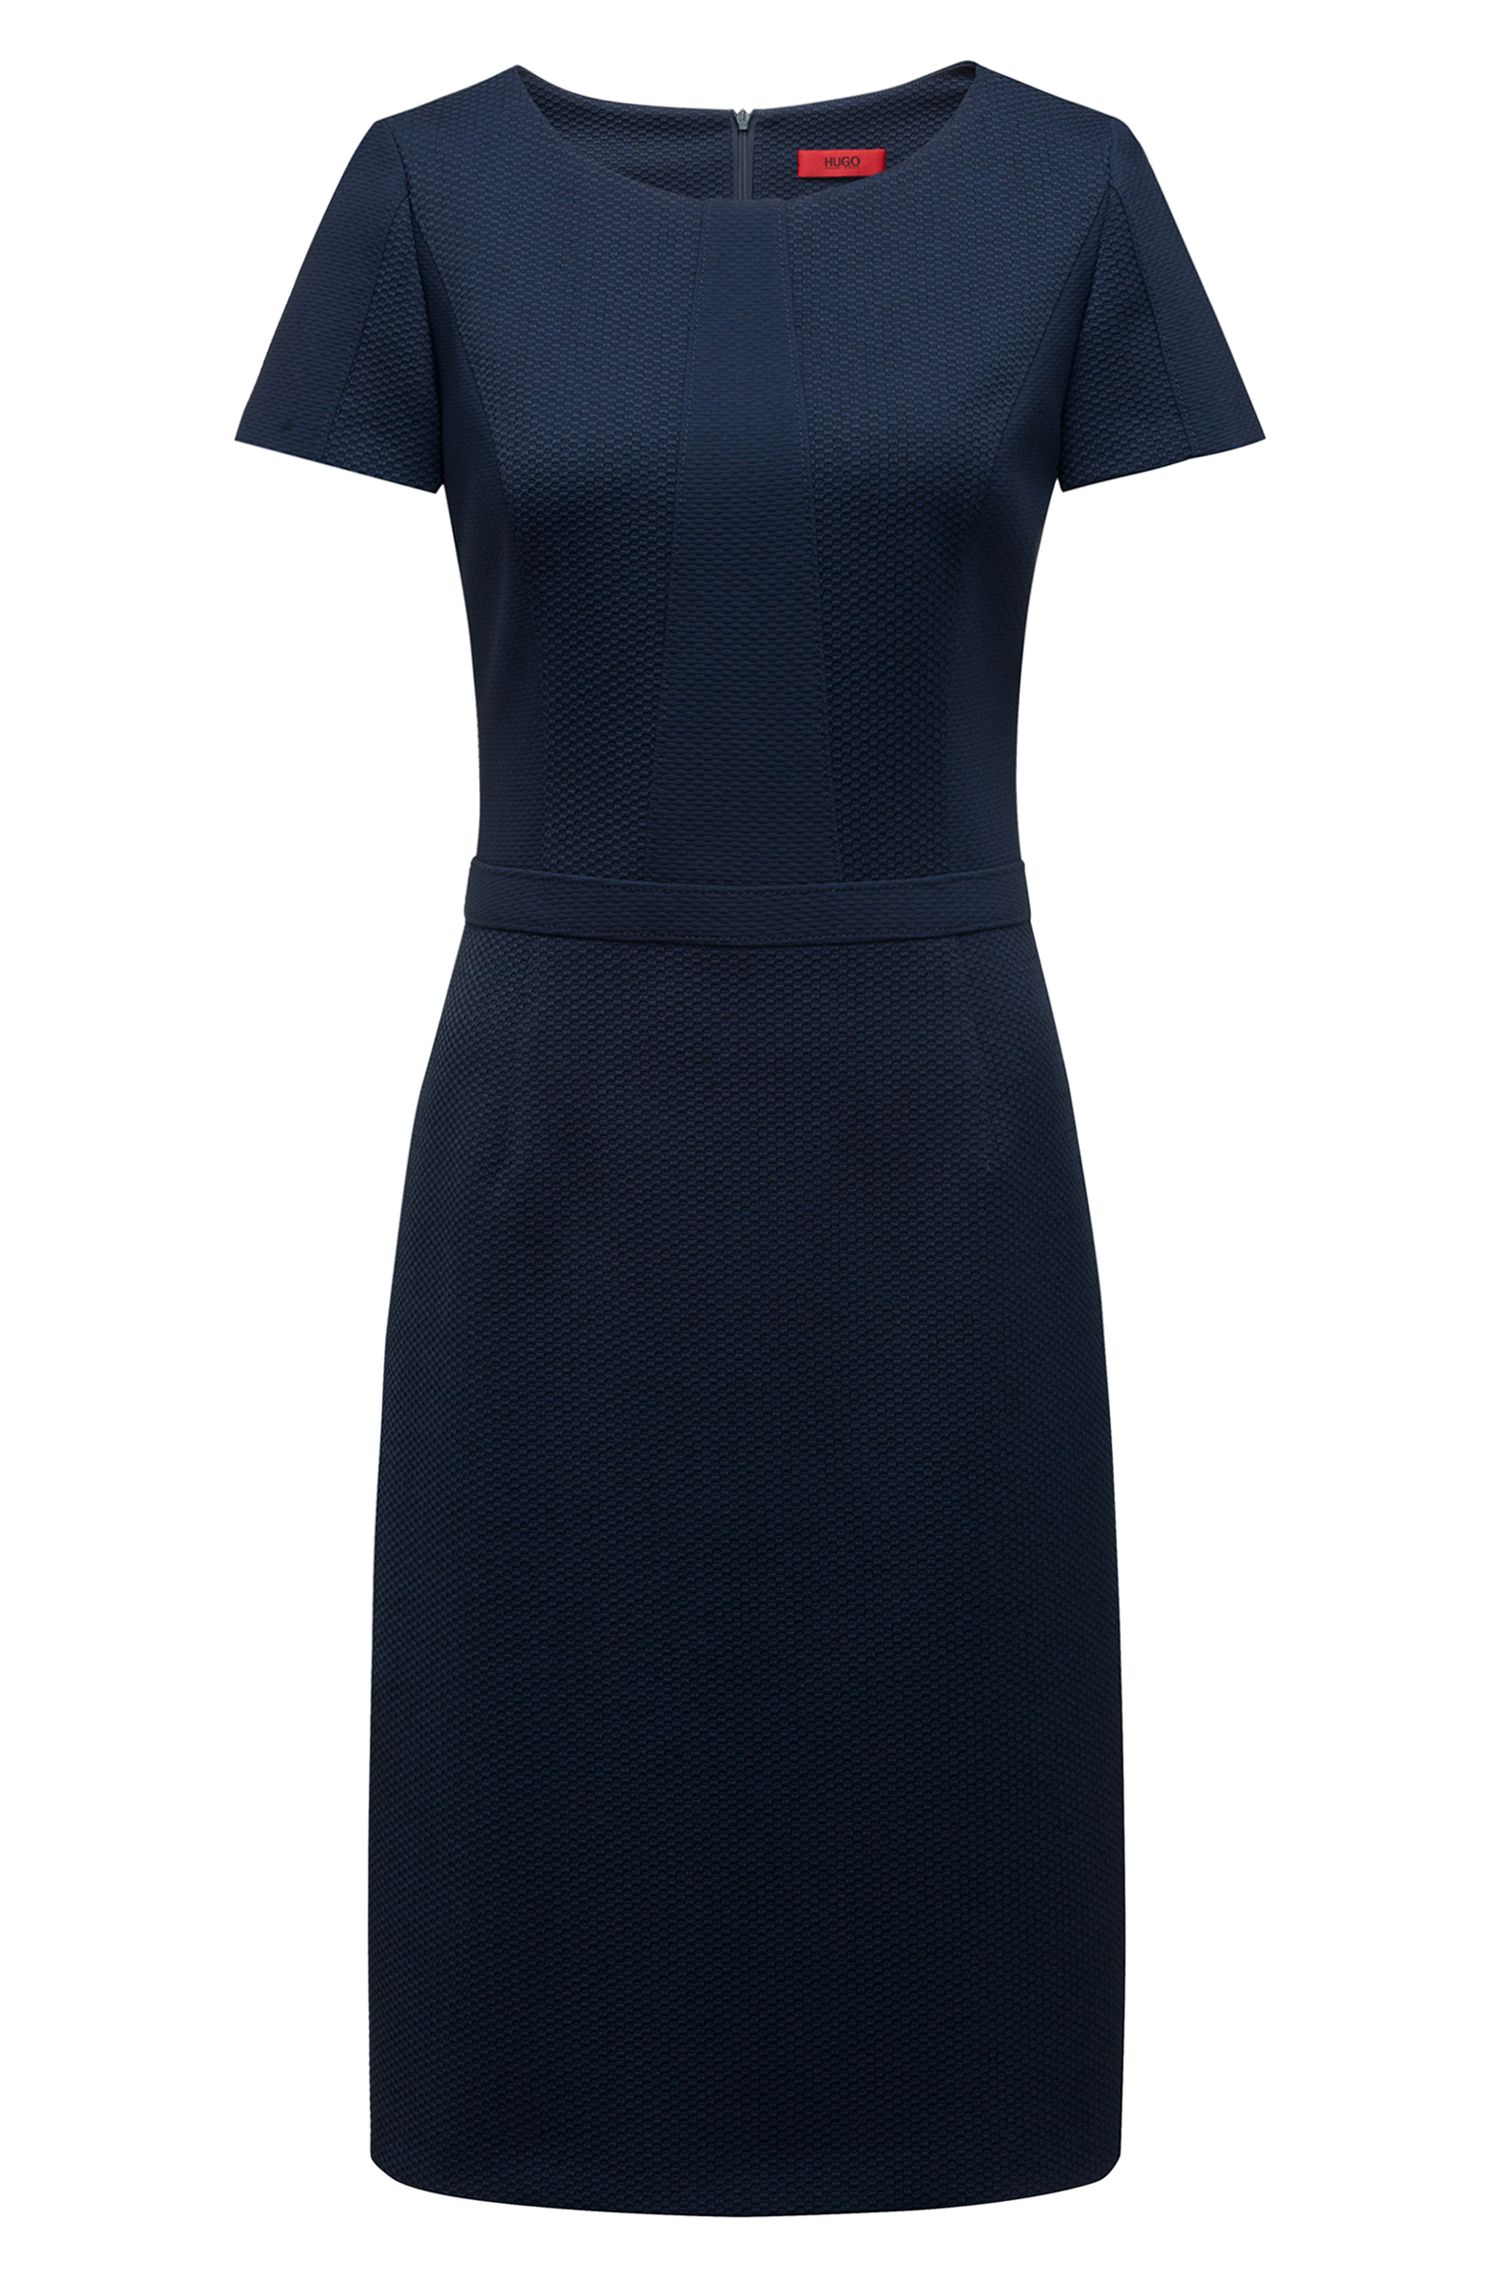 Short-sleeved dress in panelled stretch fabric, Dark Blue